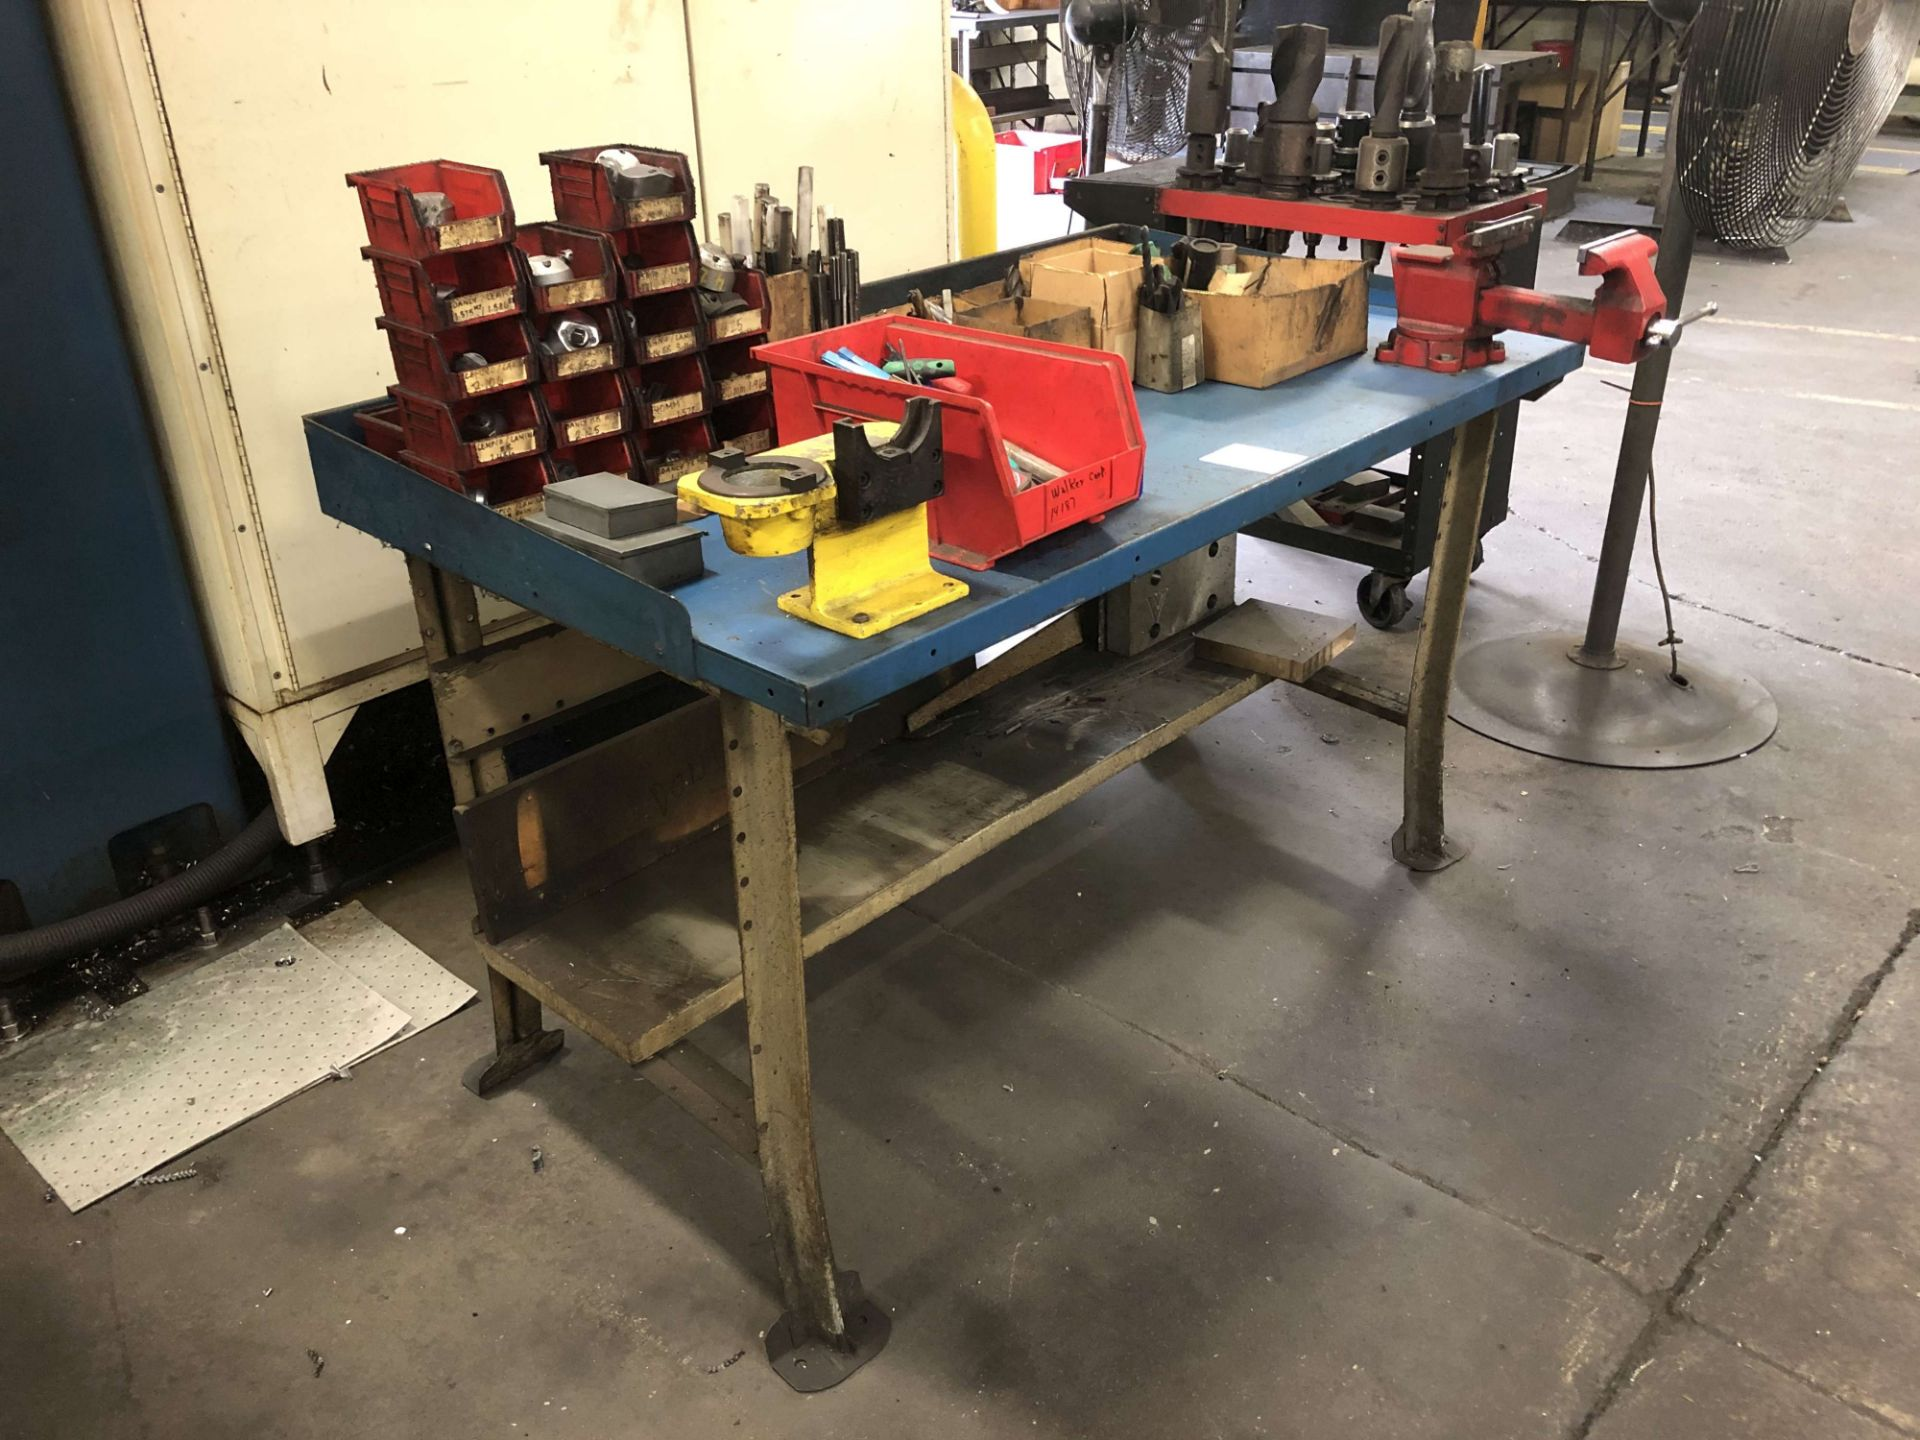 """Lot 40 - Metal Table (5' W x 34"""" D x 34"""" High) w/ Wilton 5"""" Vise; Comes w/ All Contents"""